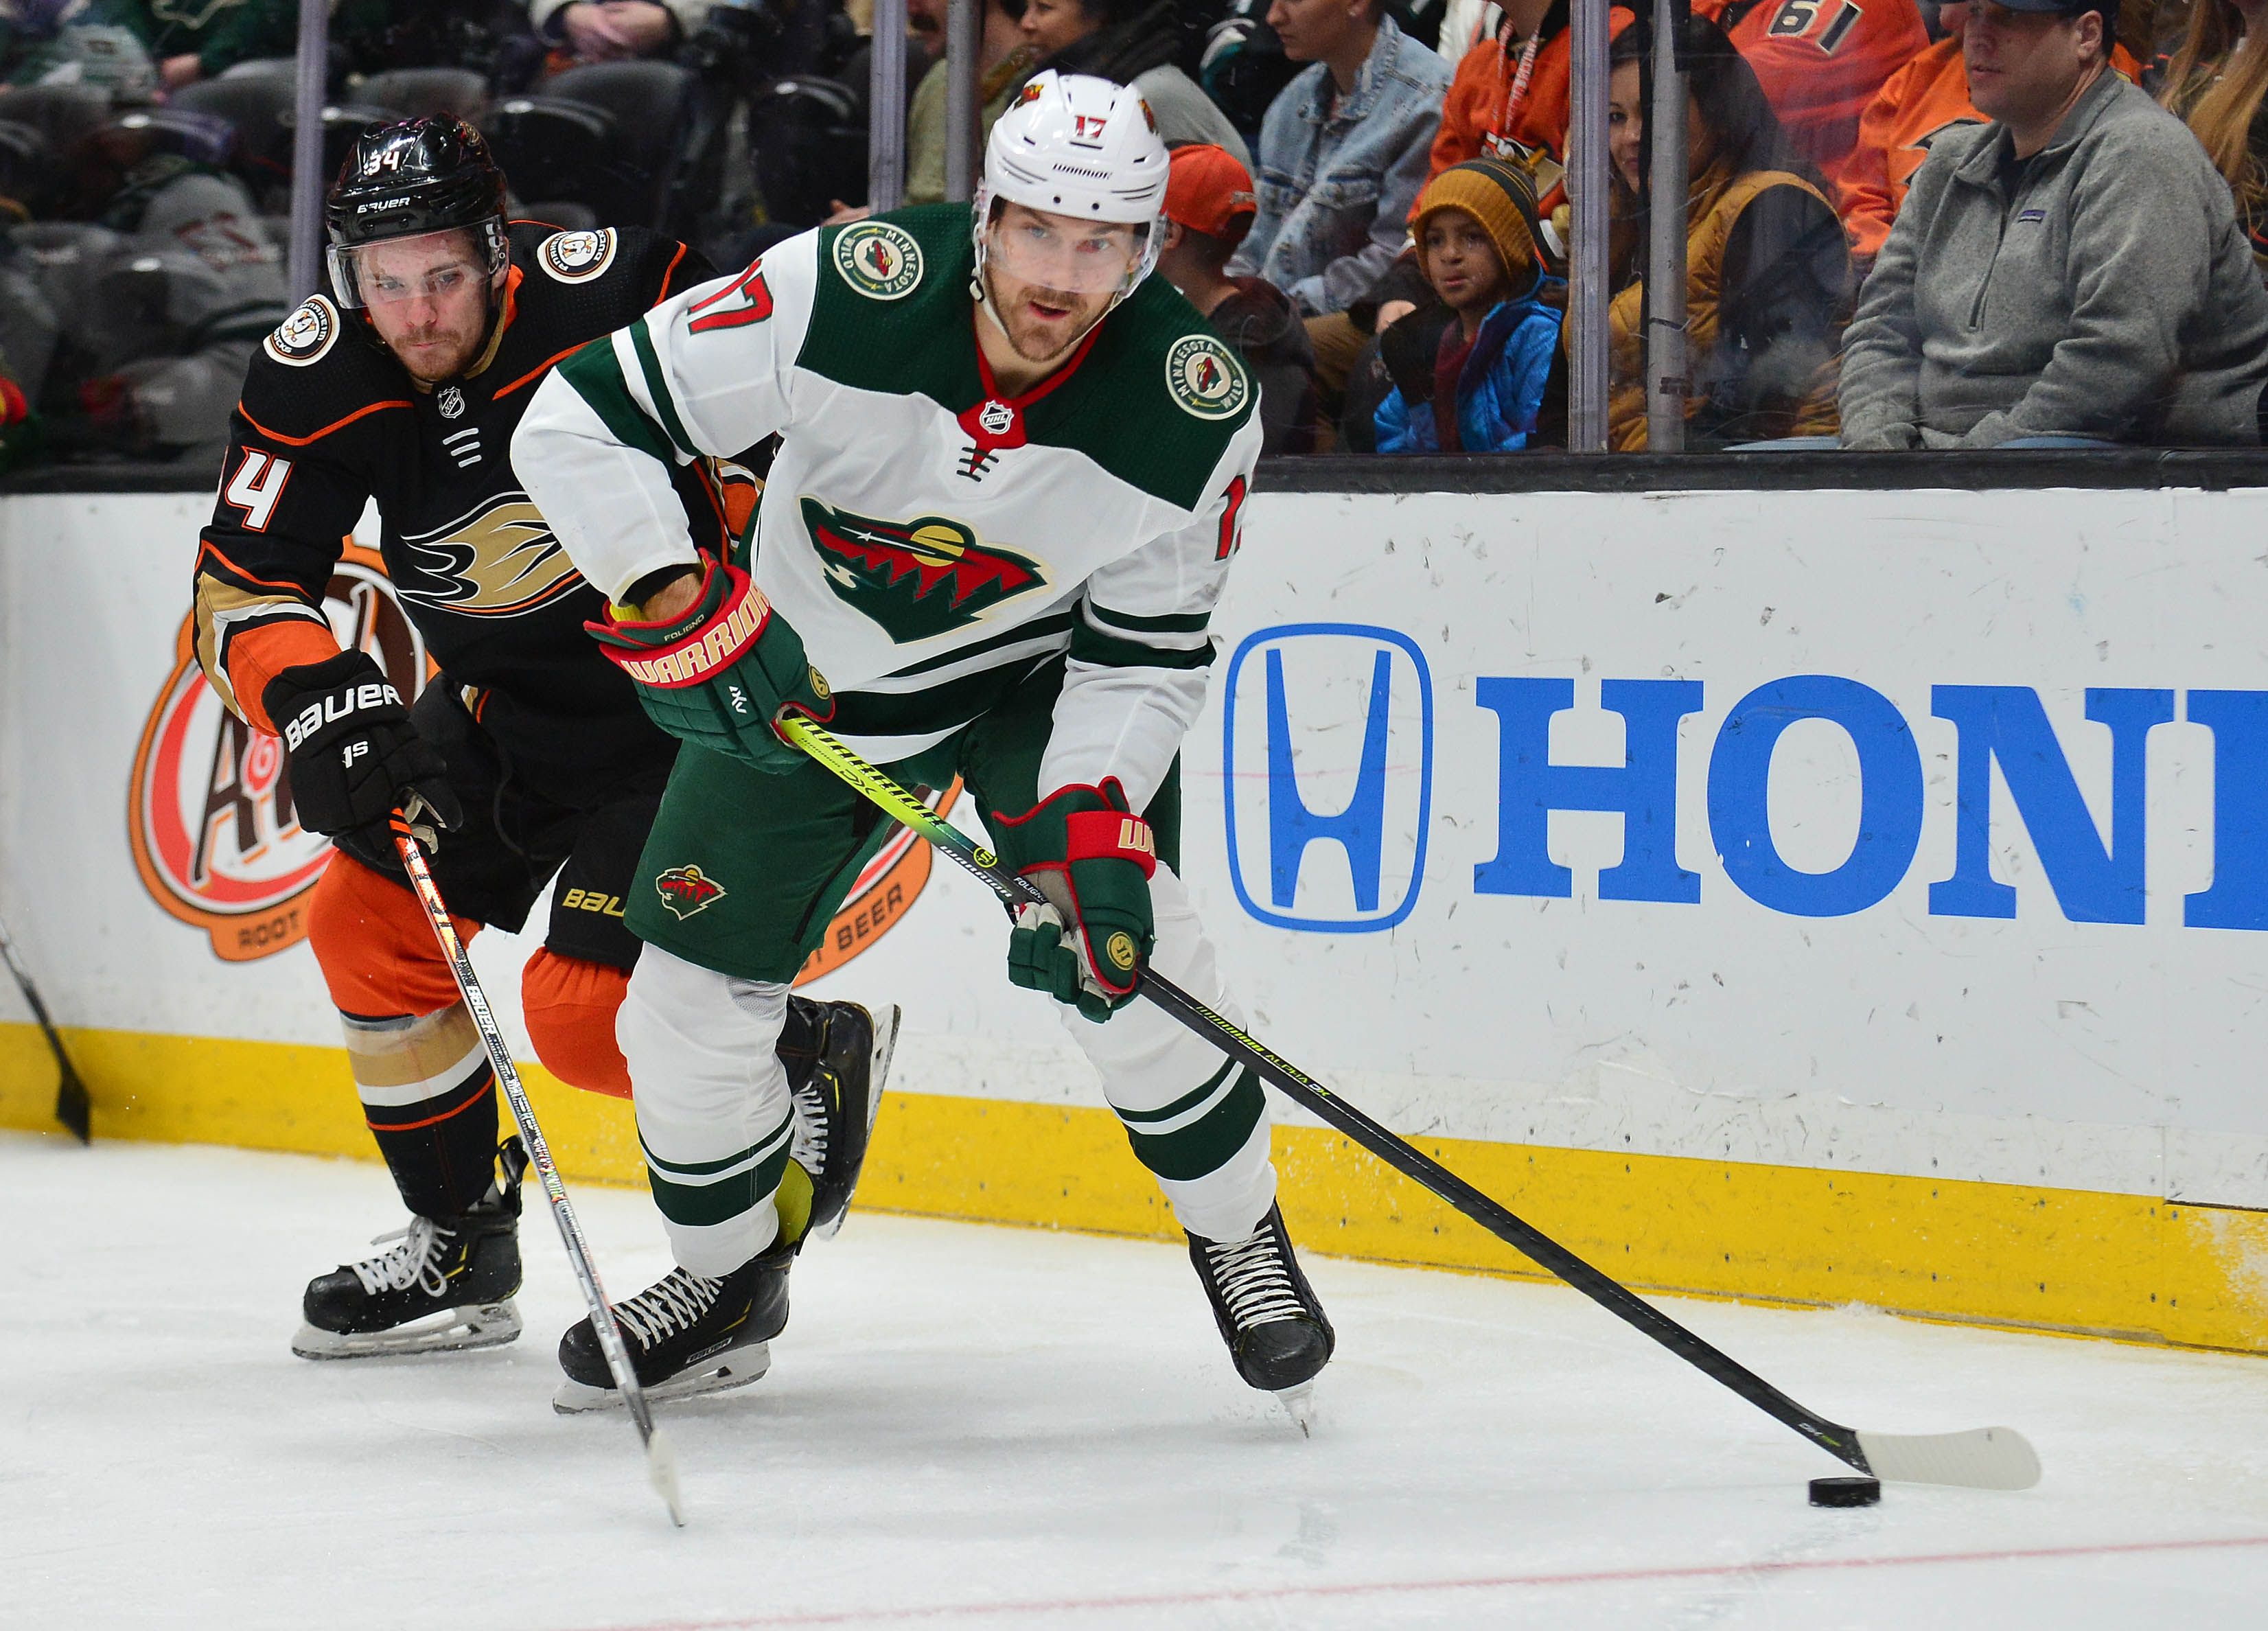 Covid-19 Continues to Pause the Minnesota Wild's 2021 NHL Season